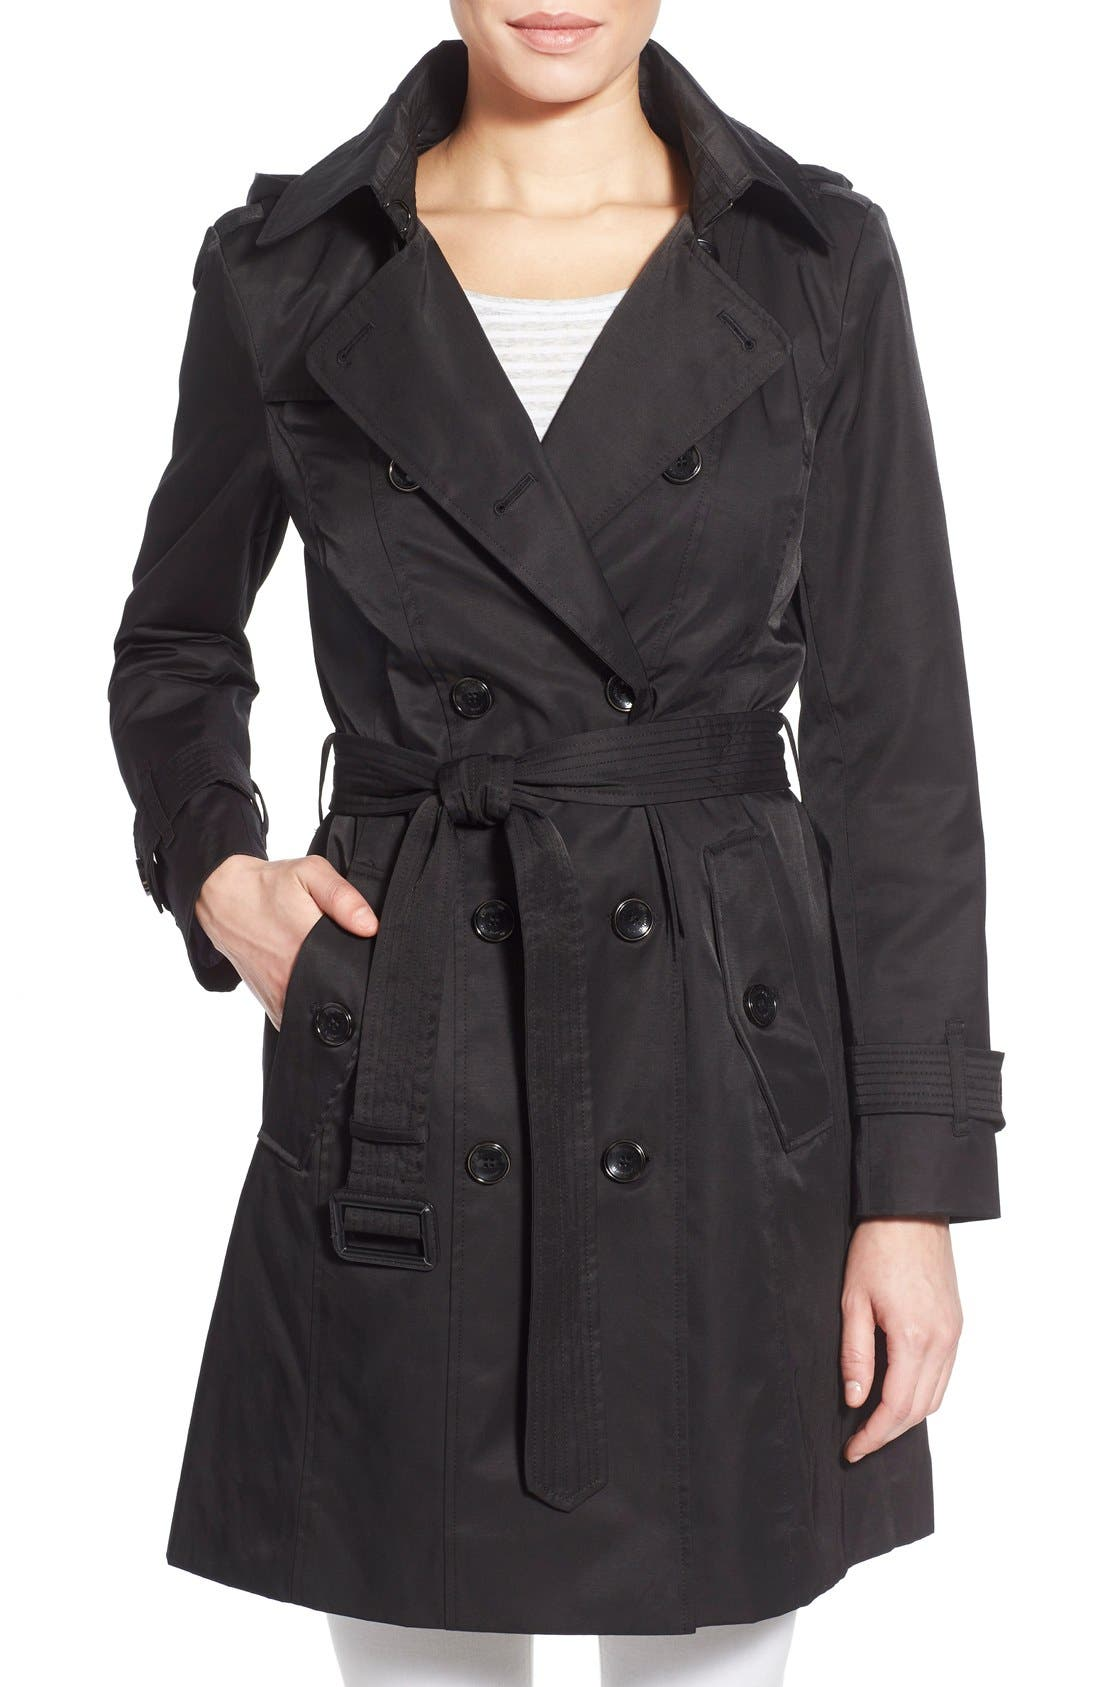 Main Image - London Fog Hooded Double Breasted Trench Coat (Regular & Petite)